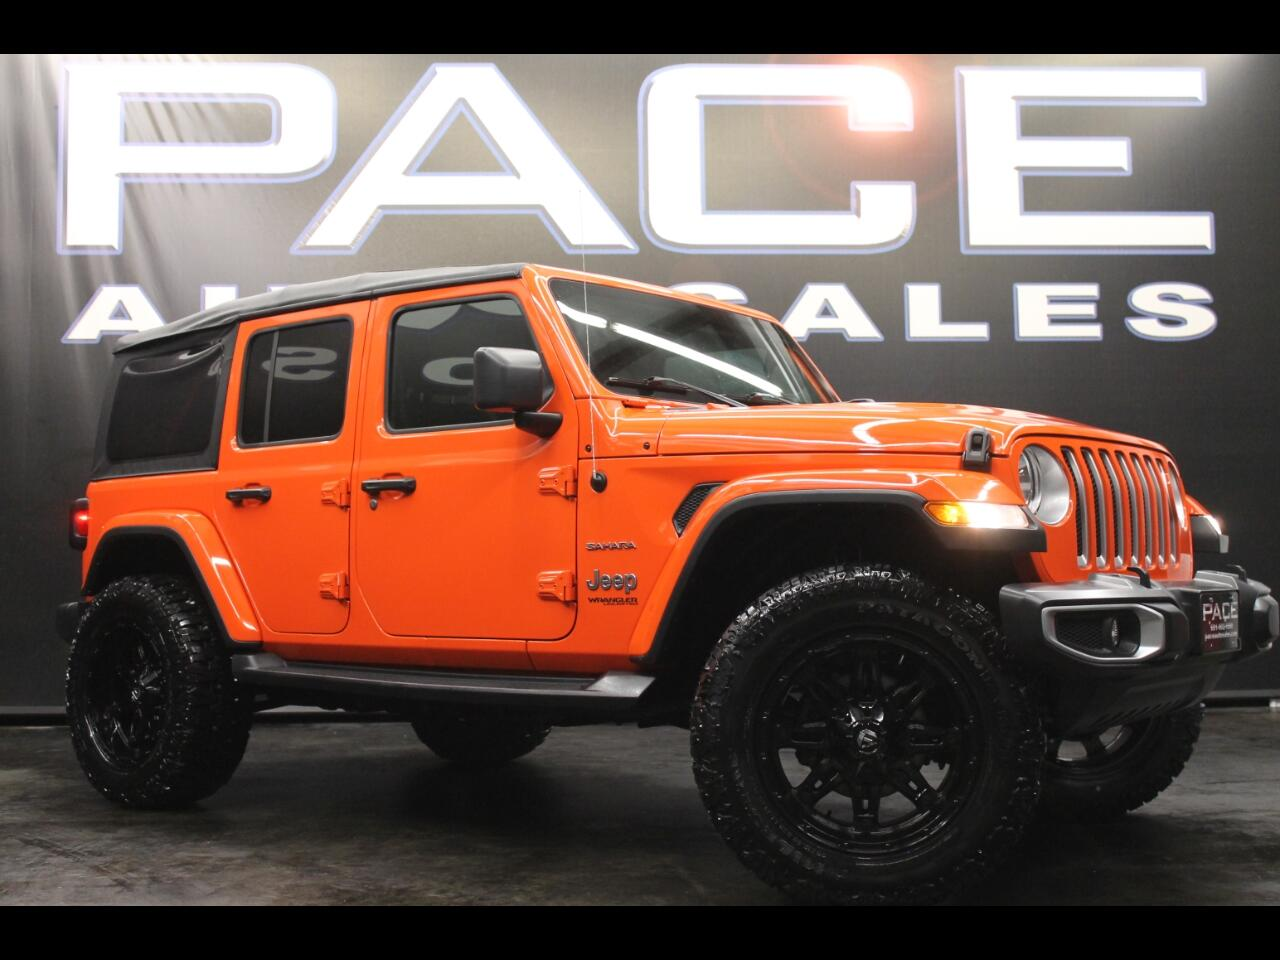 2018 Jeep Wrangler Unlimited Sahara 4x4 Unlimited Lifted Custom